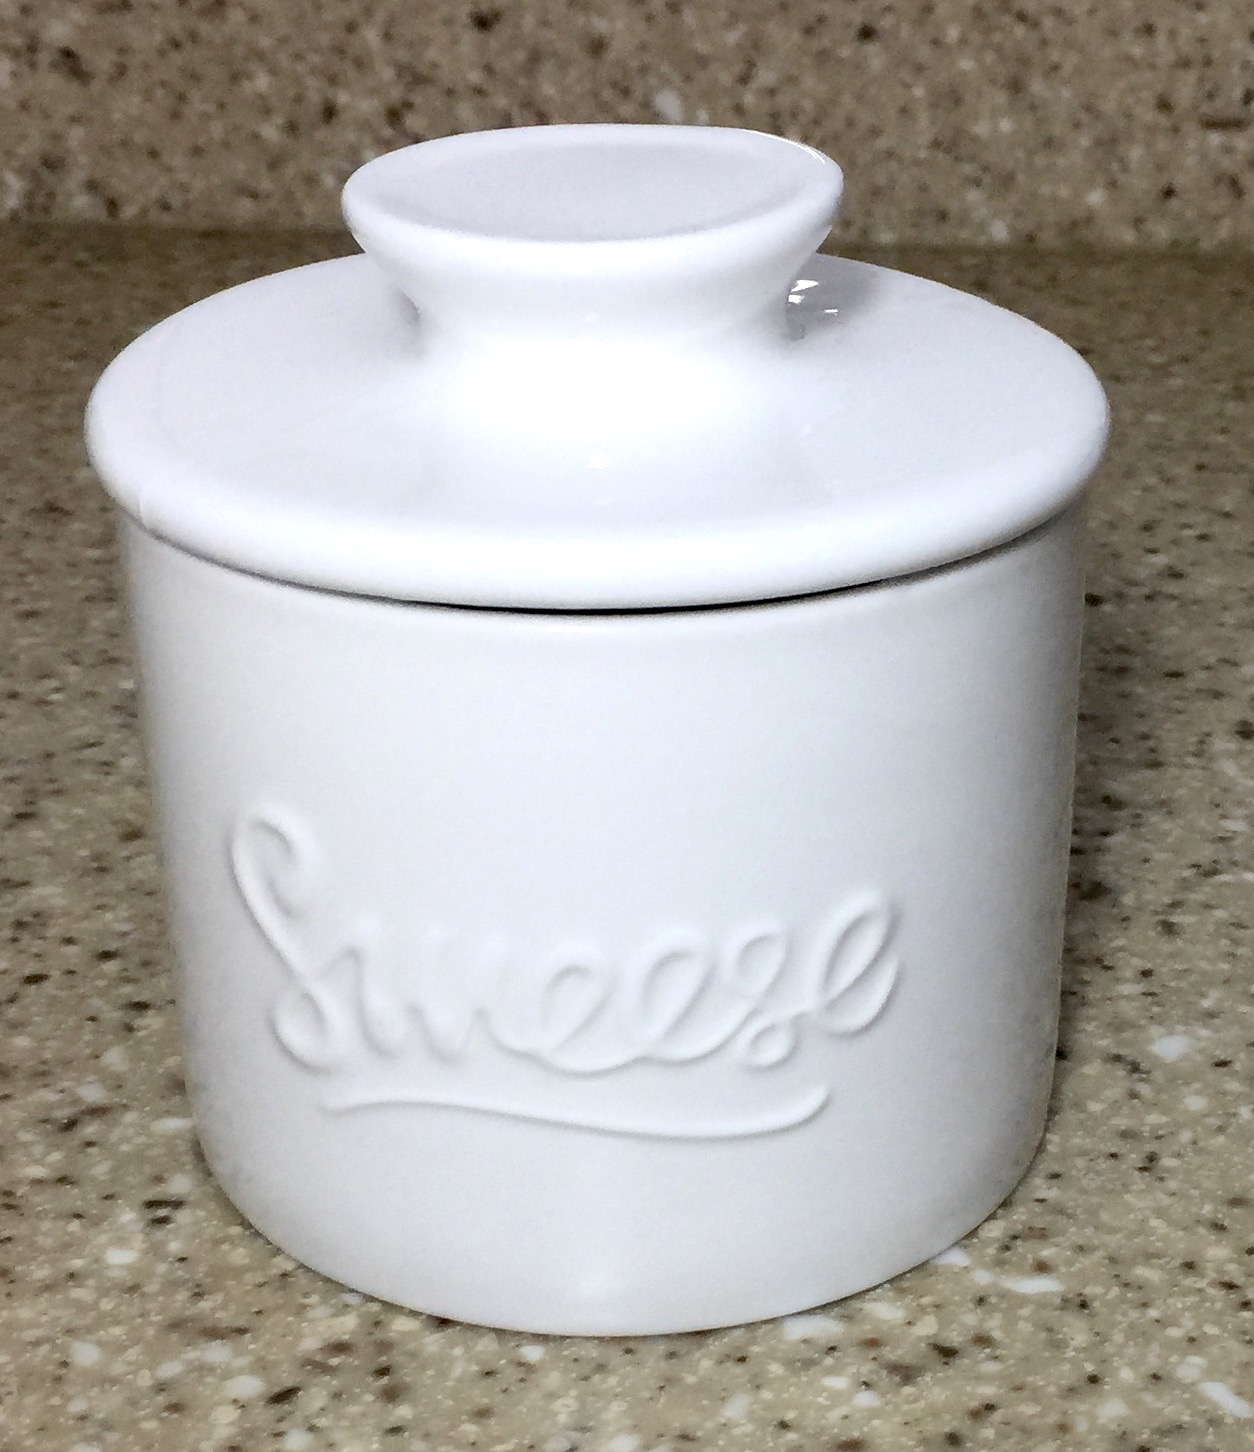 Sweese Butter Keeper Crock Giveaway The Homespun Chics